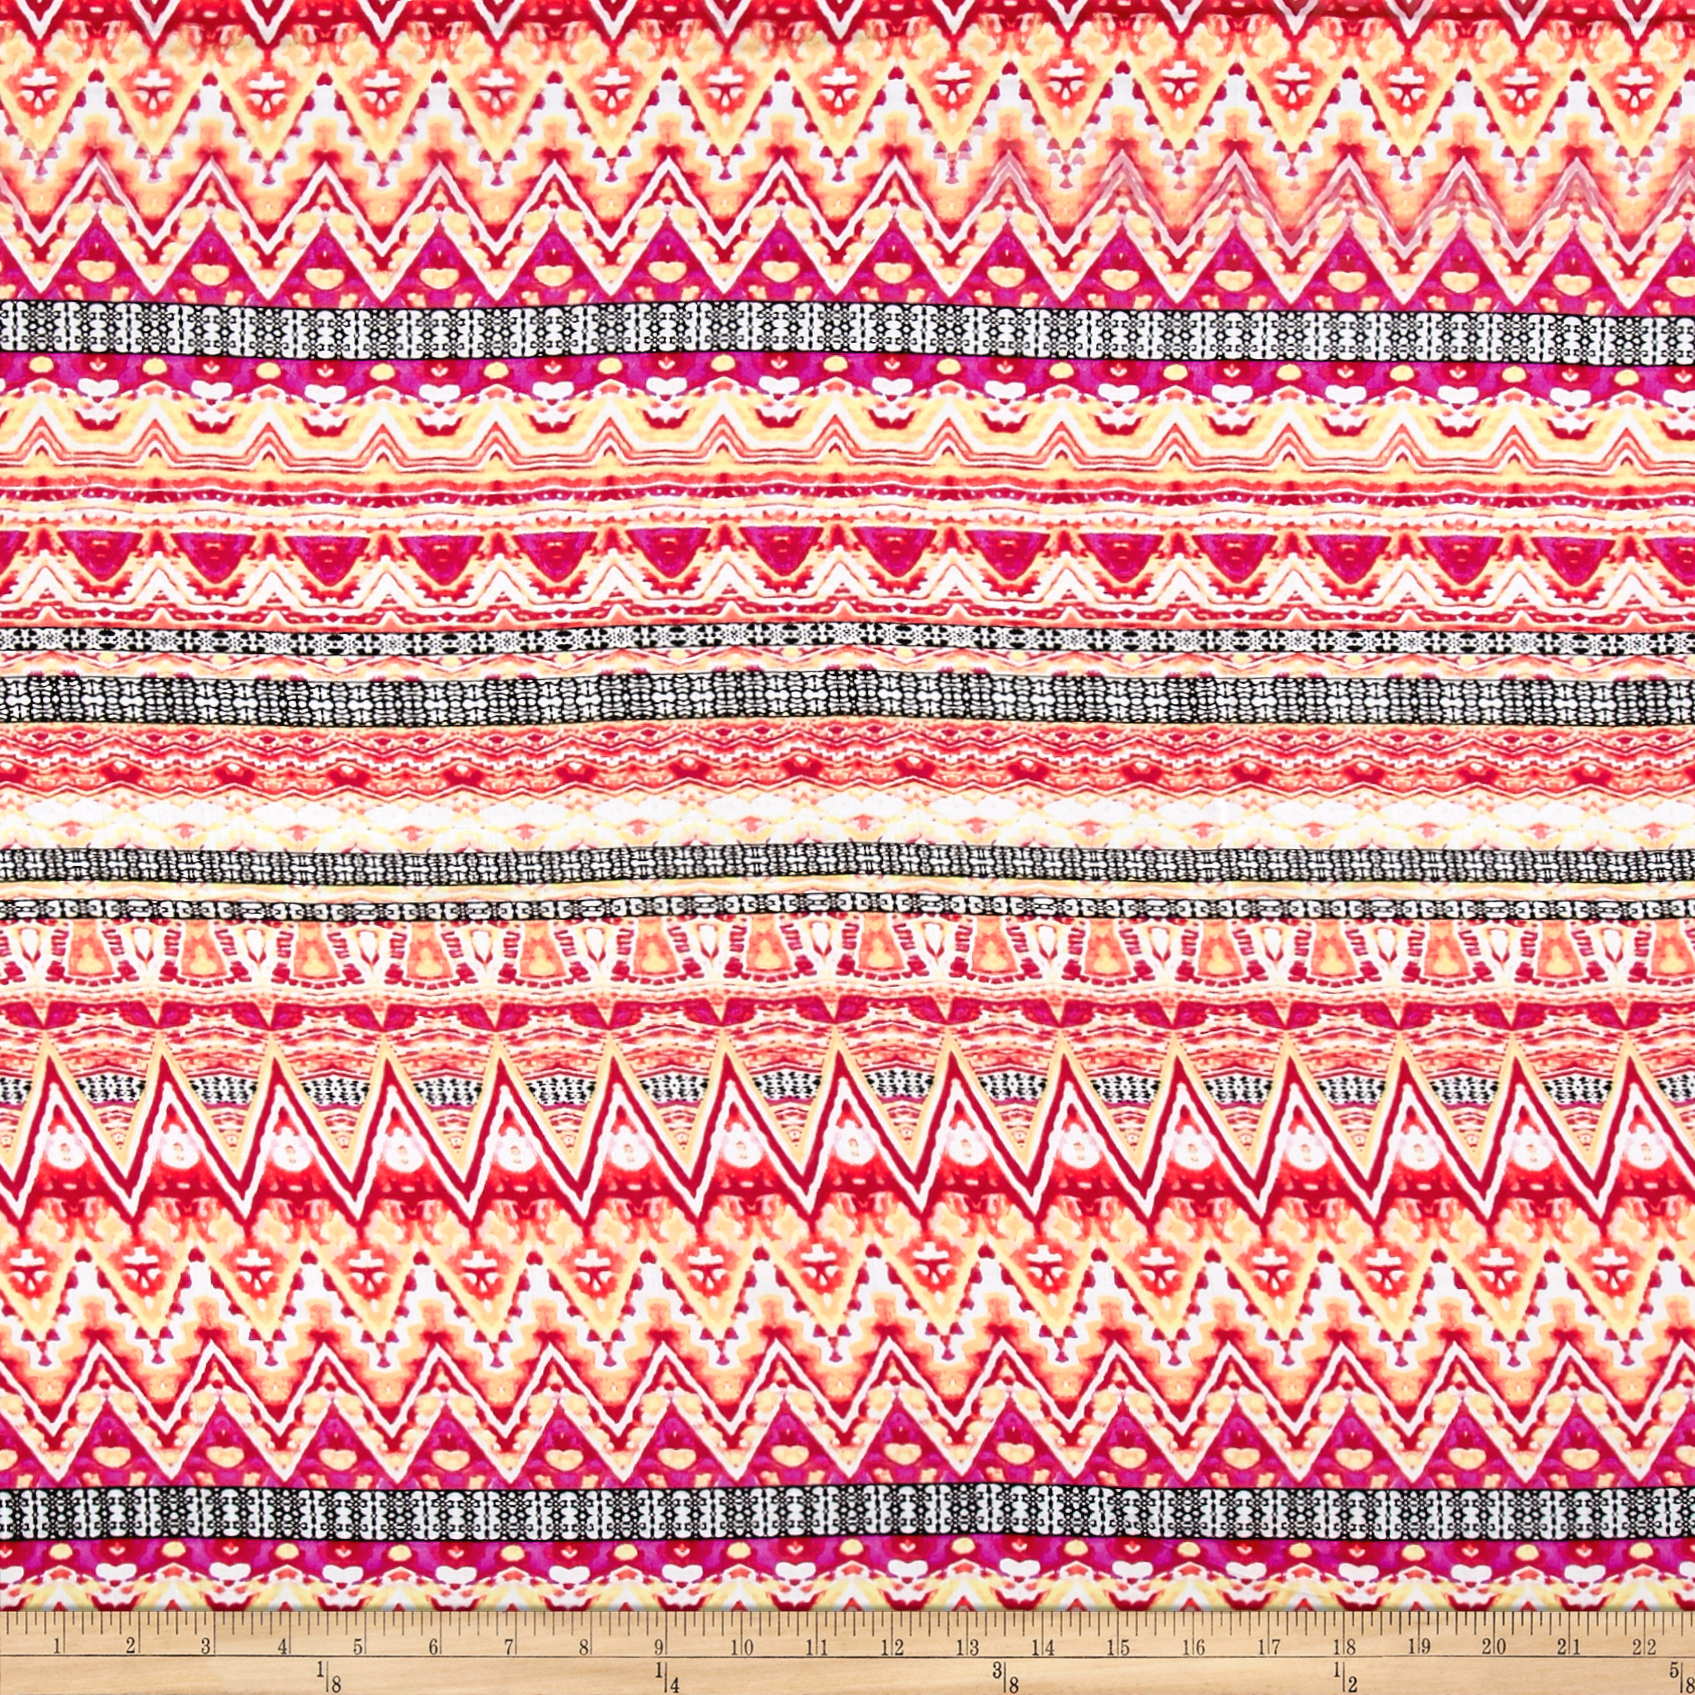 Rayon Challis Stripe Chevron Pink/Yellow Fabric